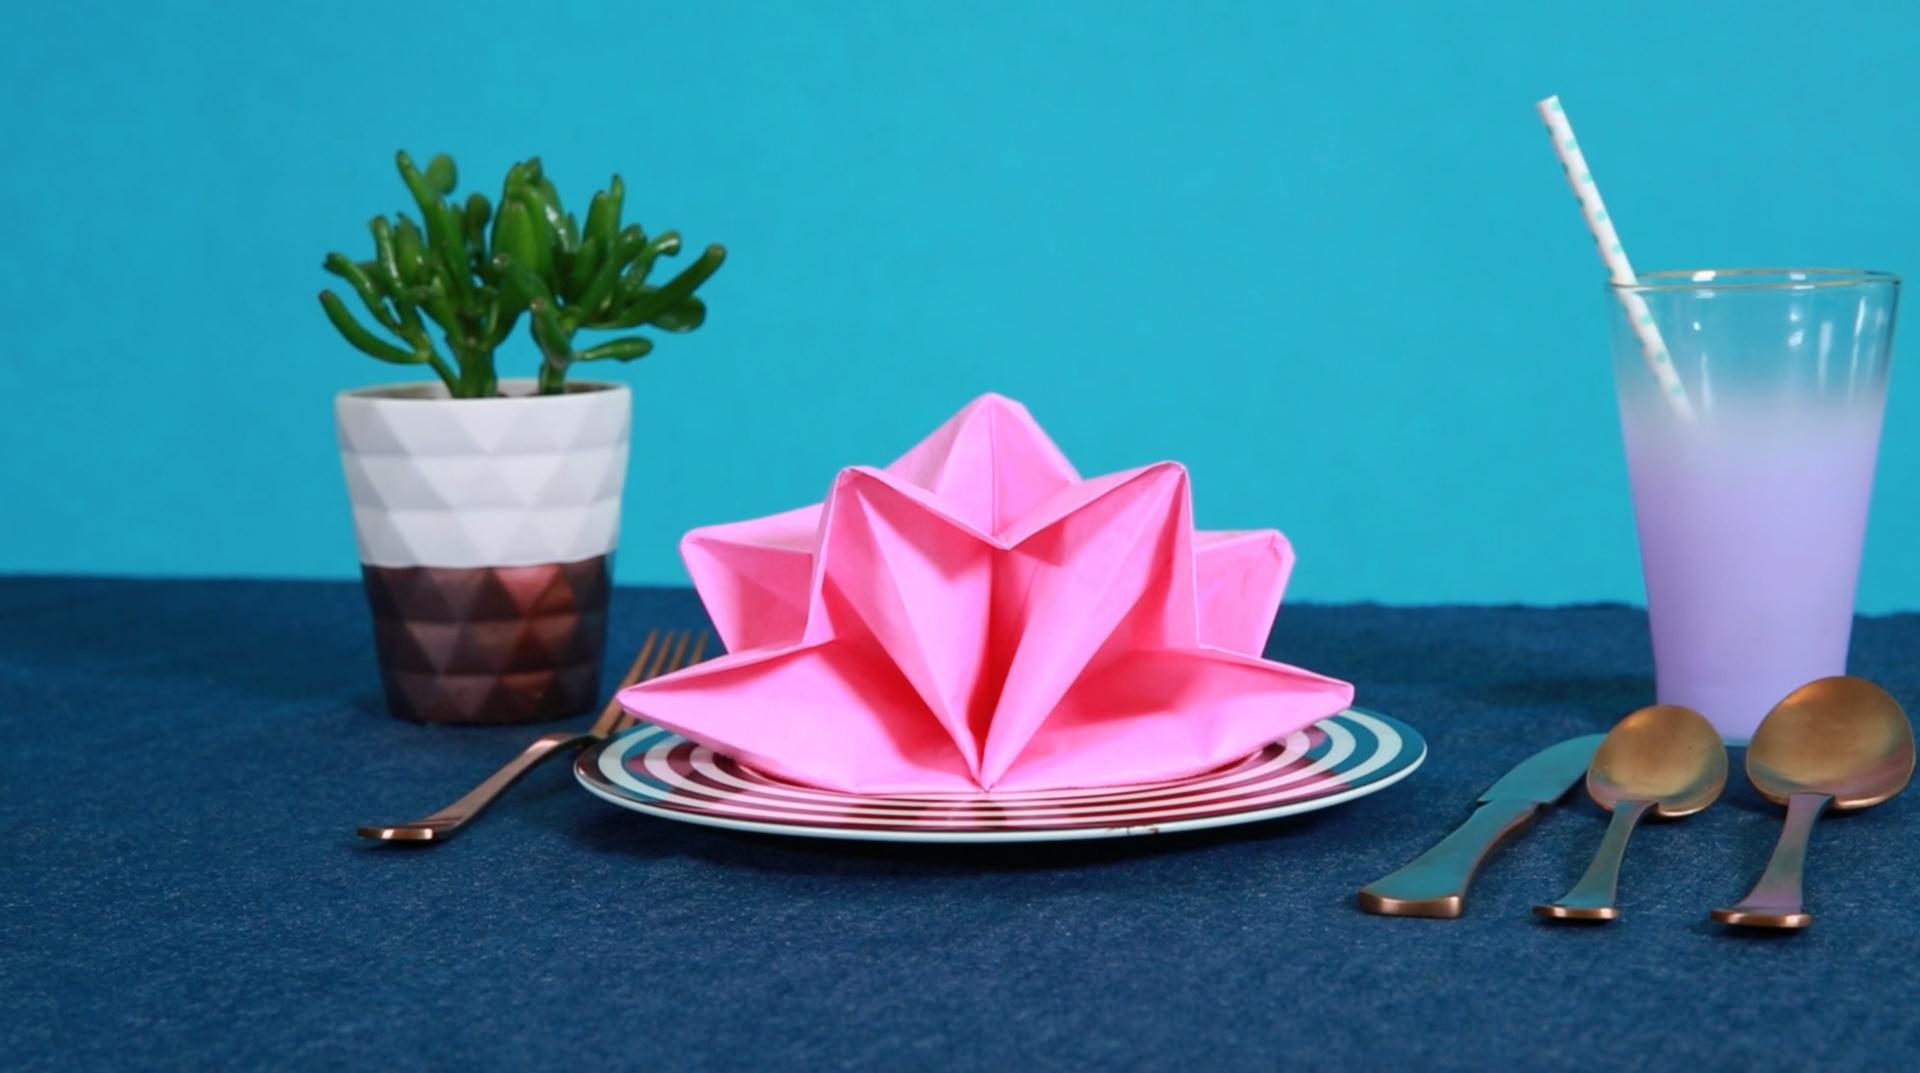 3 Easy Napkin Folds for the Fanciest Table Ever